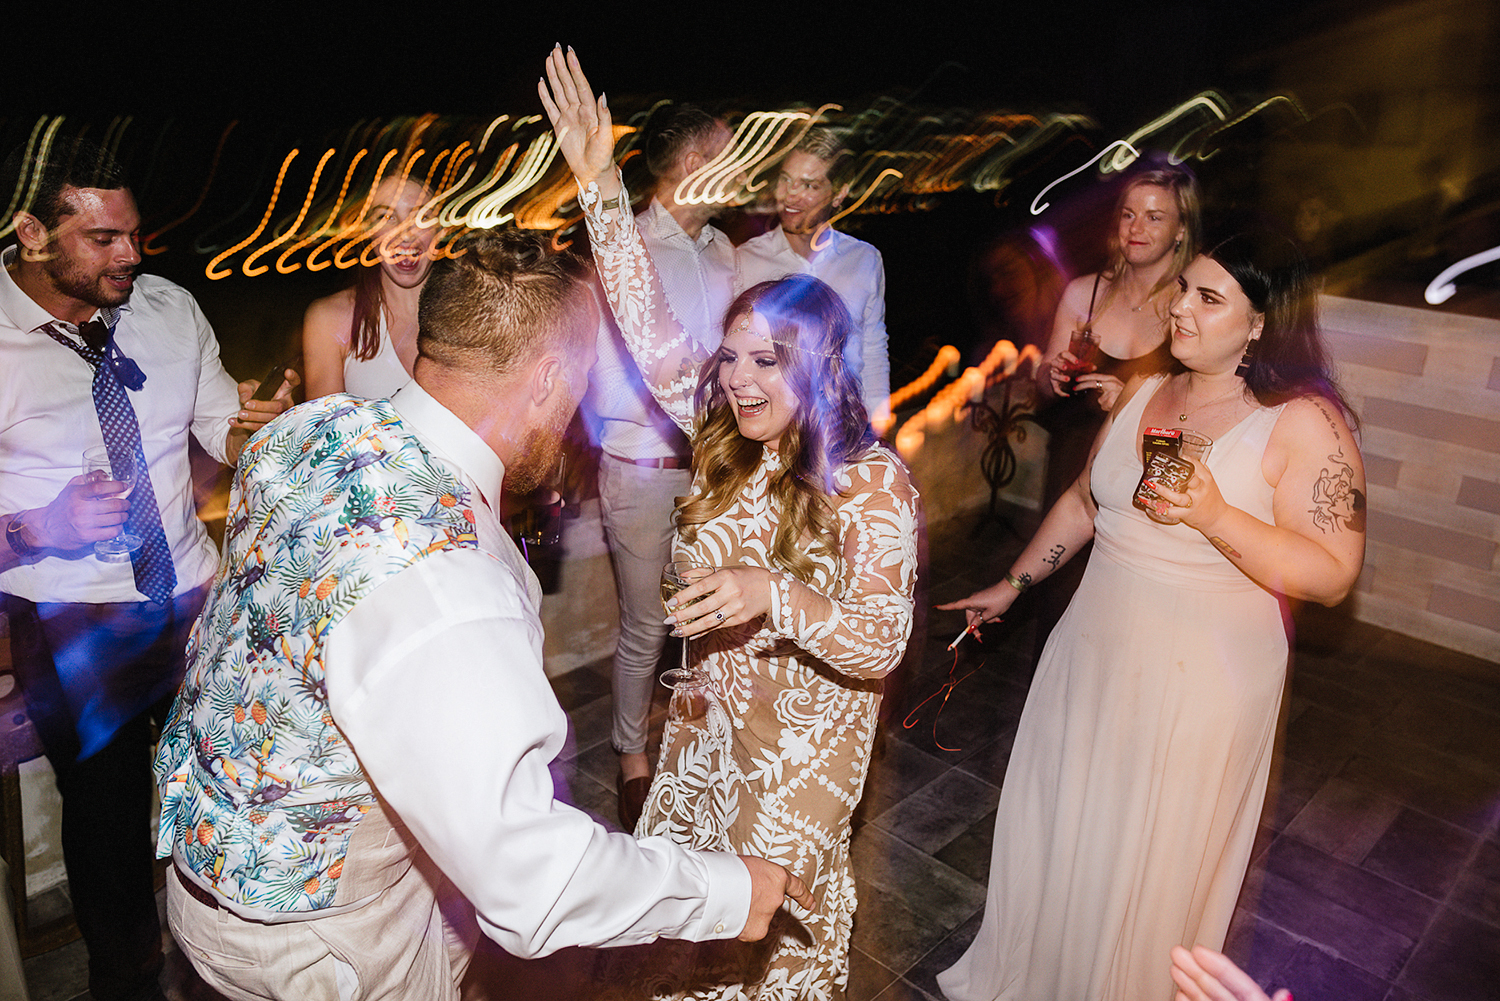 cabo-san-lucas-ventanas-private-residence-alternative-toronto-wedding-photographer-documentary-photojournalistic-reception-party-dancing-photos-candid-documentary-moments-groom-and-bride-dancing.jpg